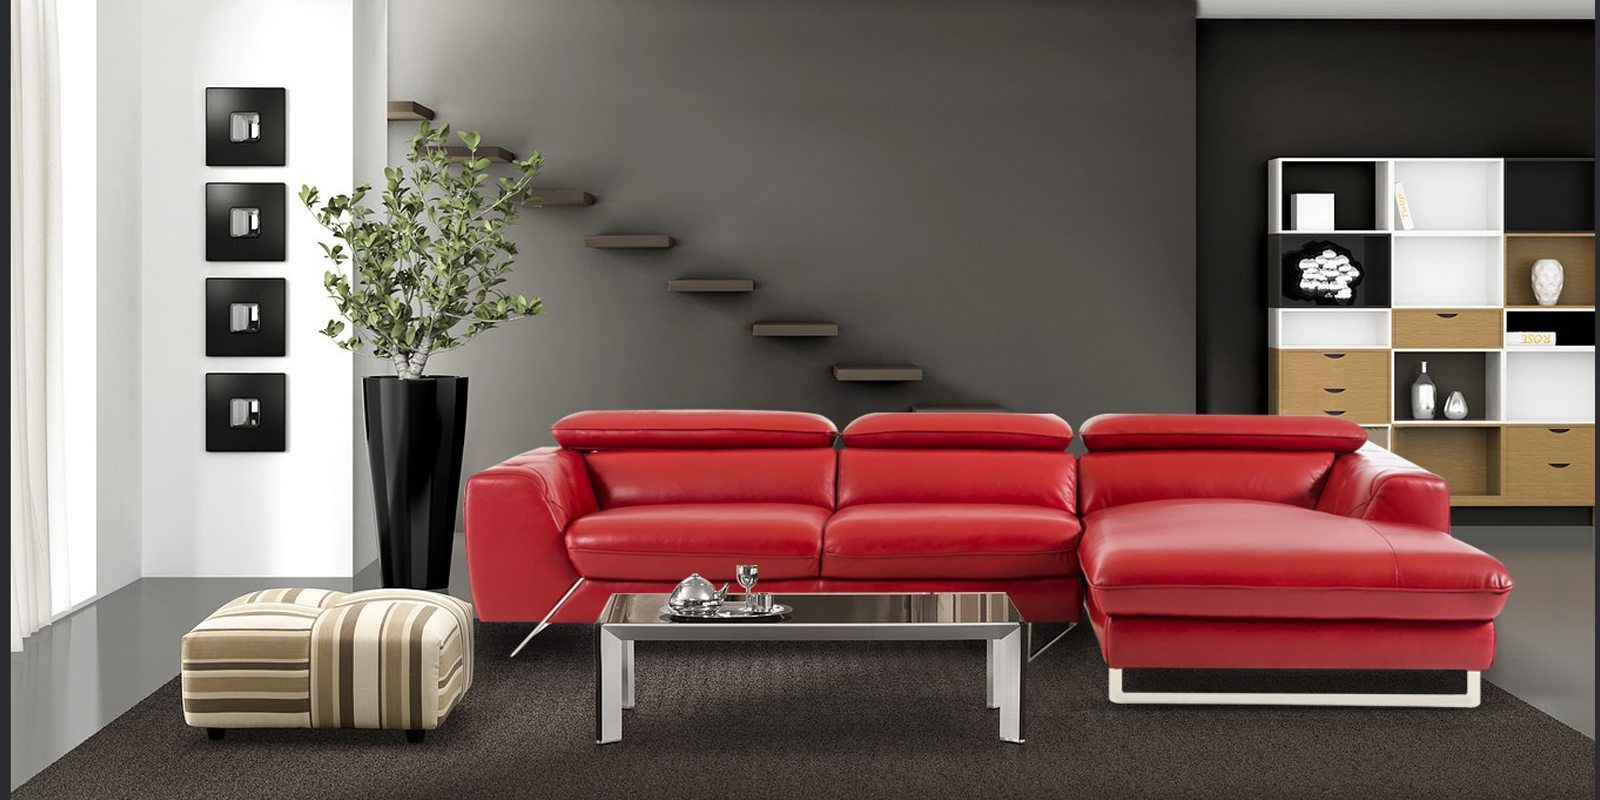 Ultra Modern Lhs Two Sofa With Lounger